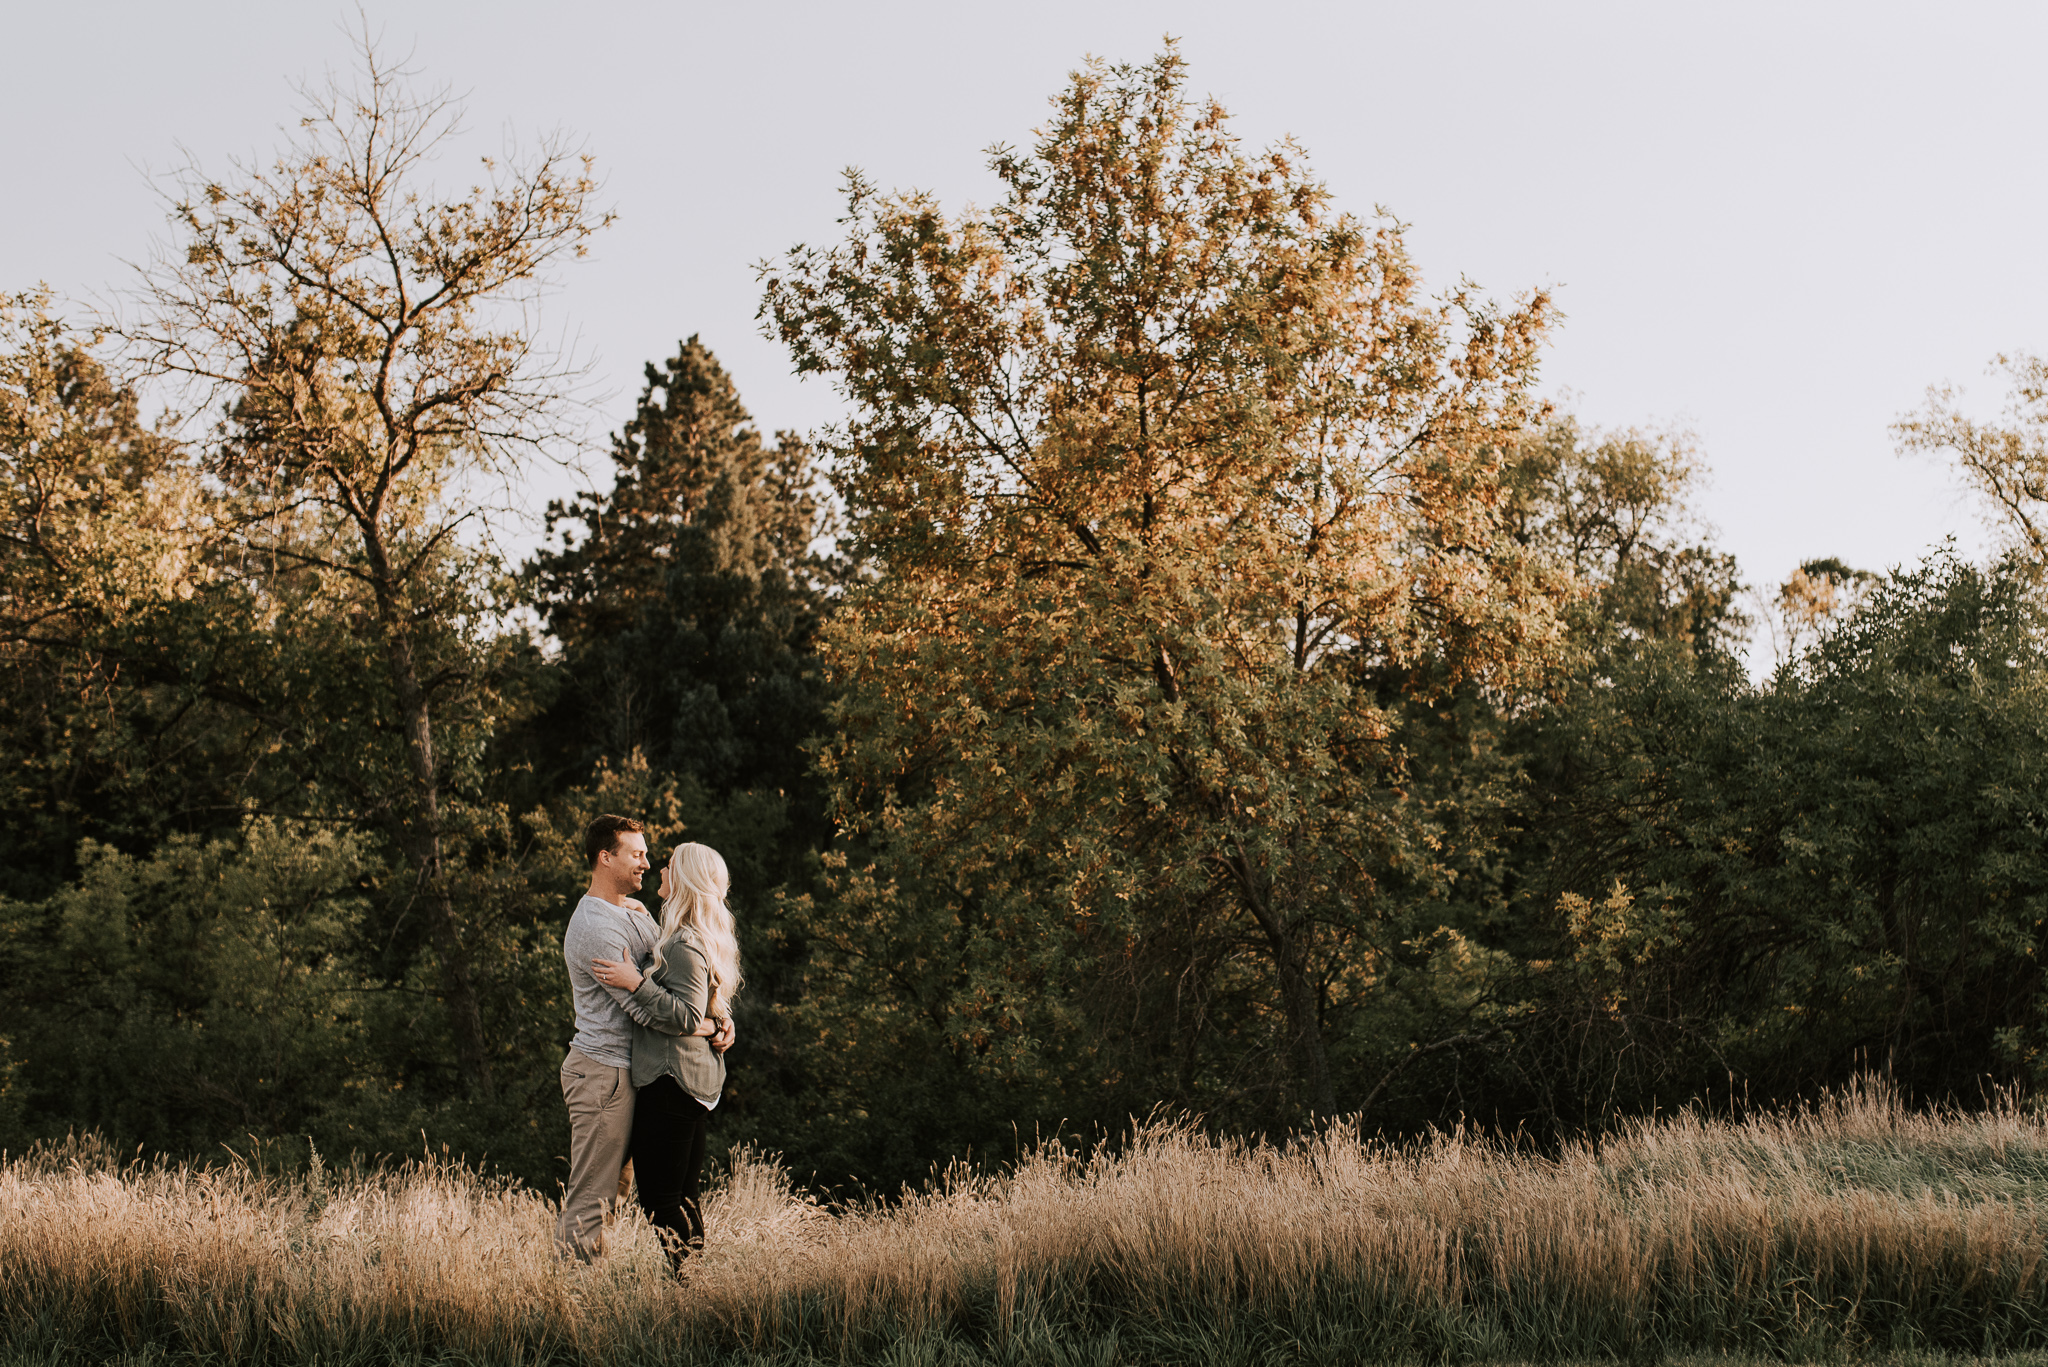 fort-lincoln-state-park-engagement-wedding-photography-15.jpg